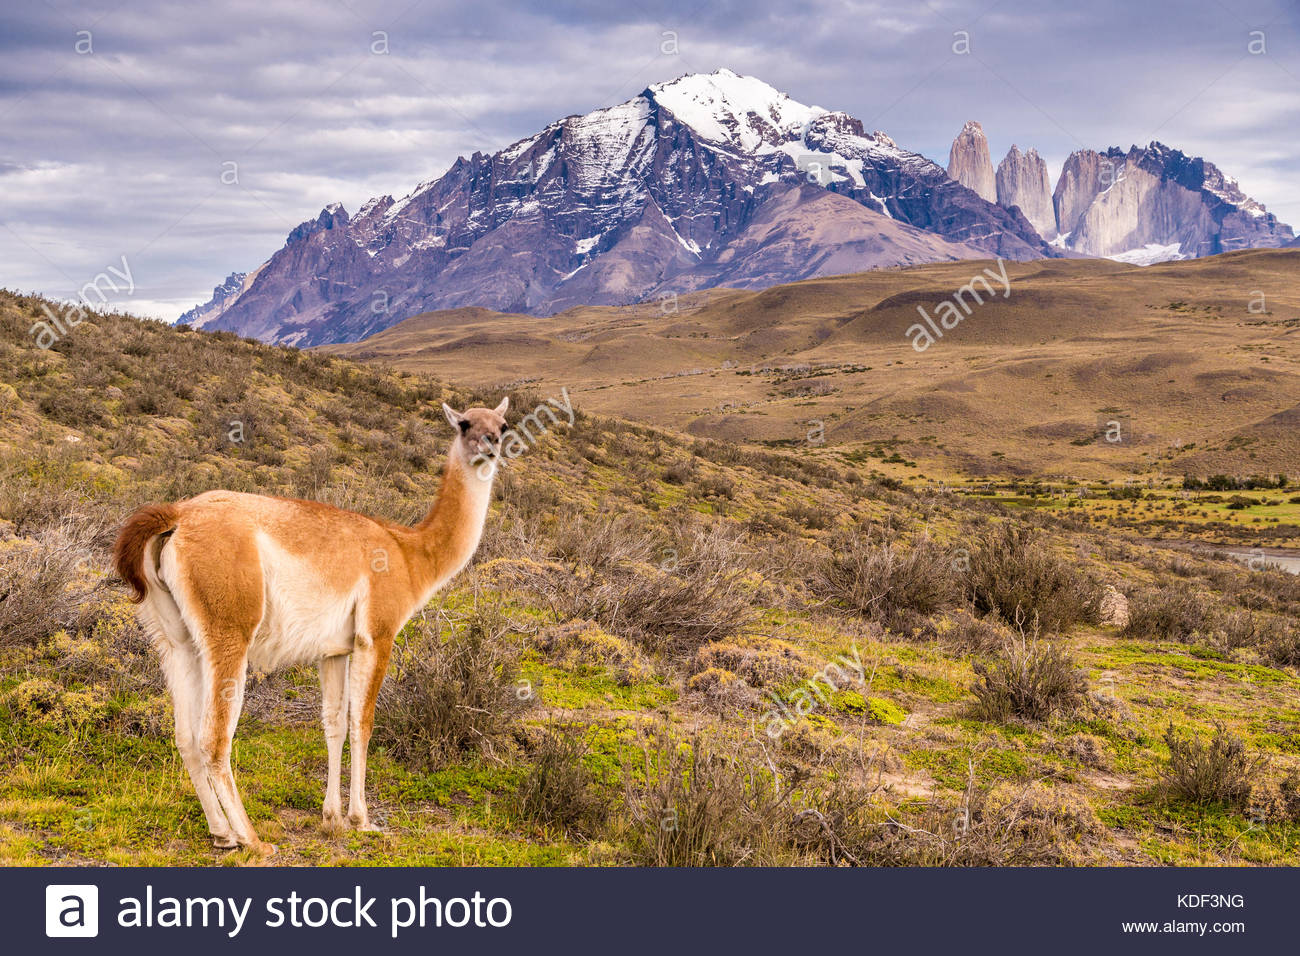 Torres del Paine National Park - Stock Image